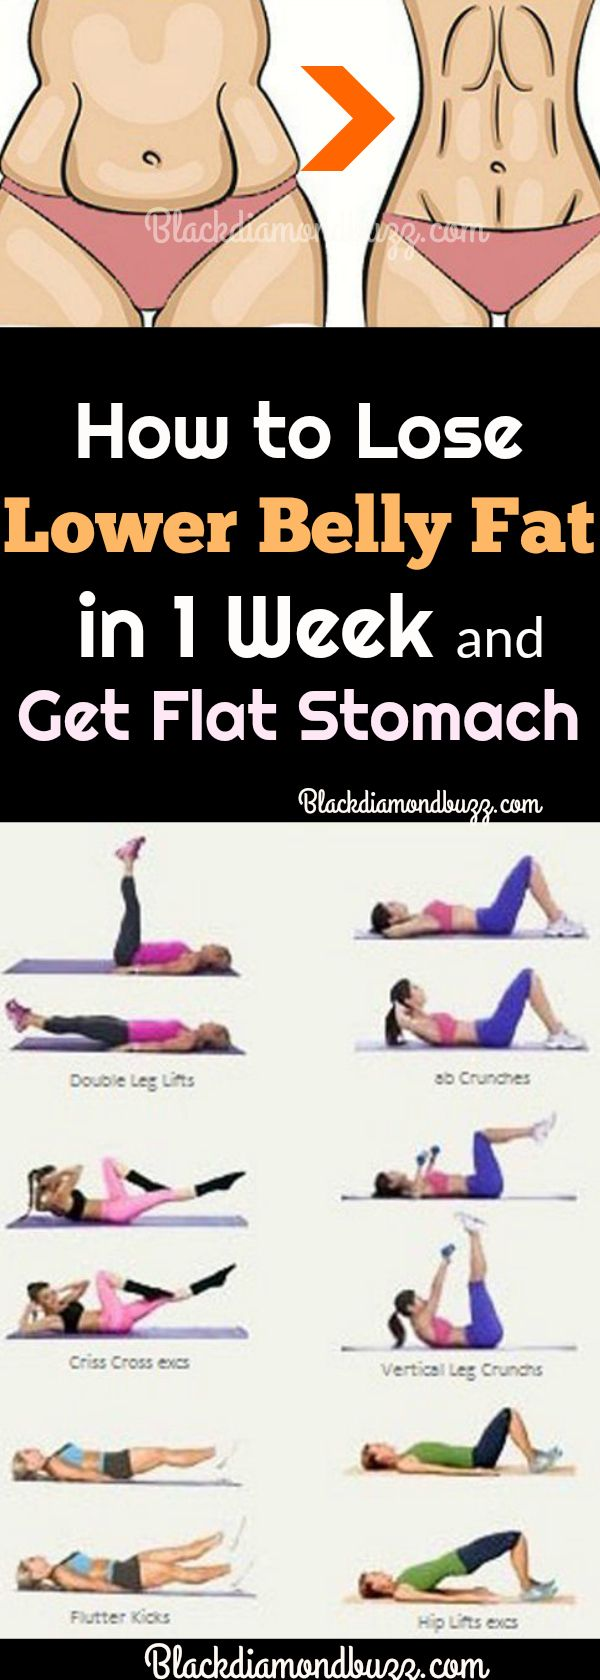 33f217702aef92f82c3cf3b2b7f89b5c - How To Get Rid Of Stomach Fat Fast At Home